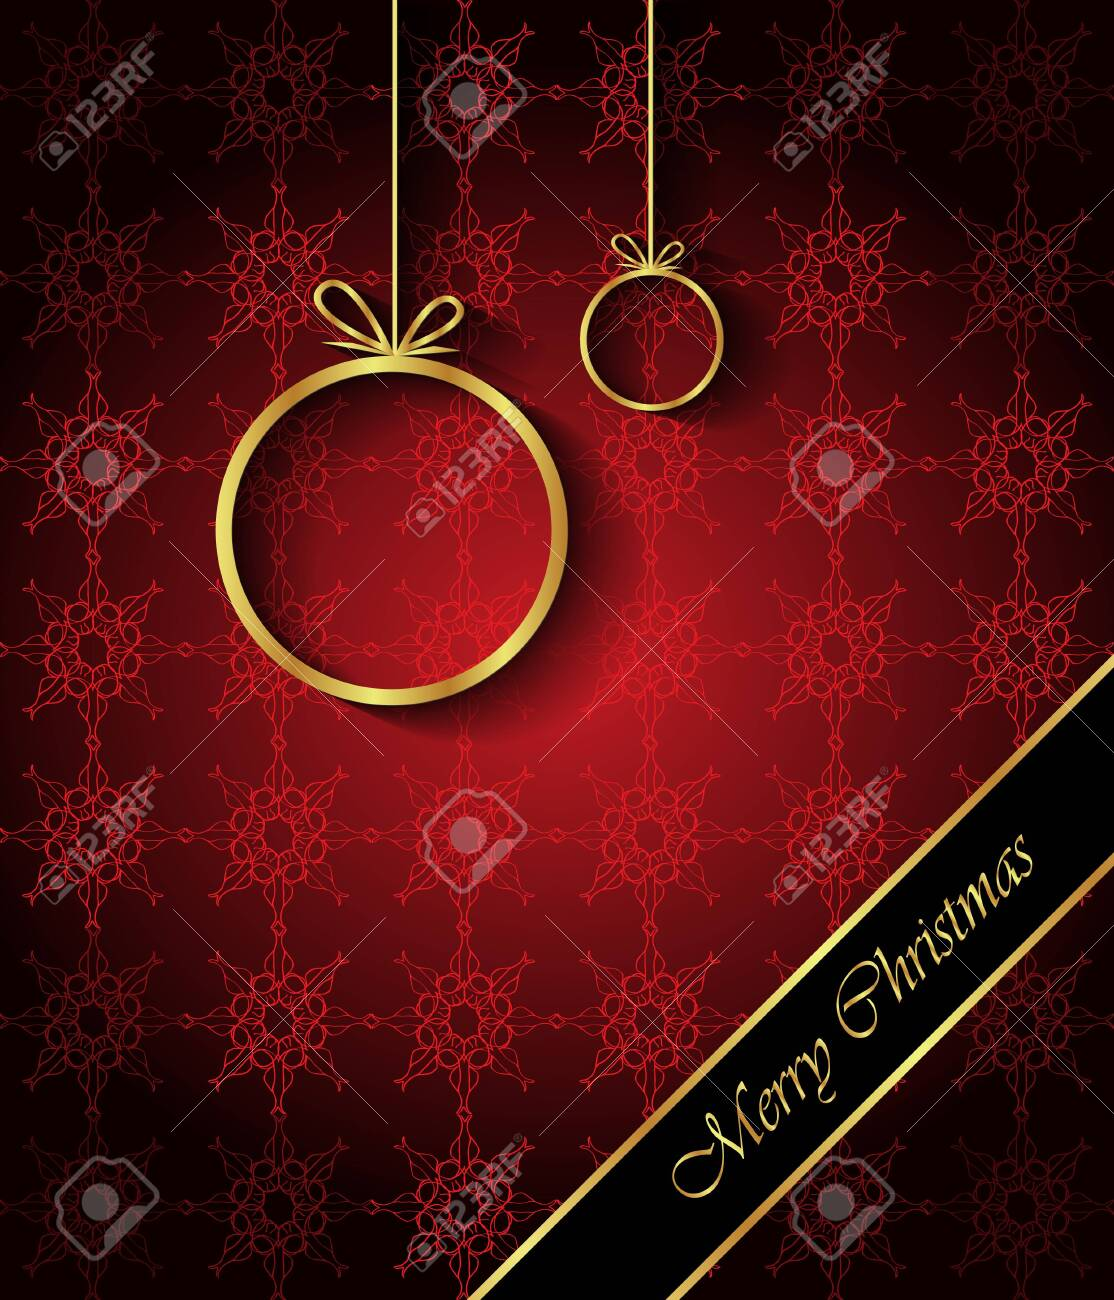 Merry Christmas Images 2020.2020 Merry Christmas Background For Your Invitations Festive